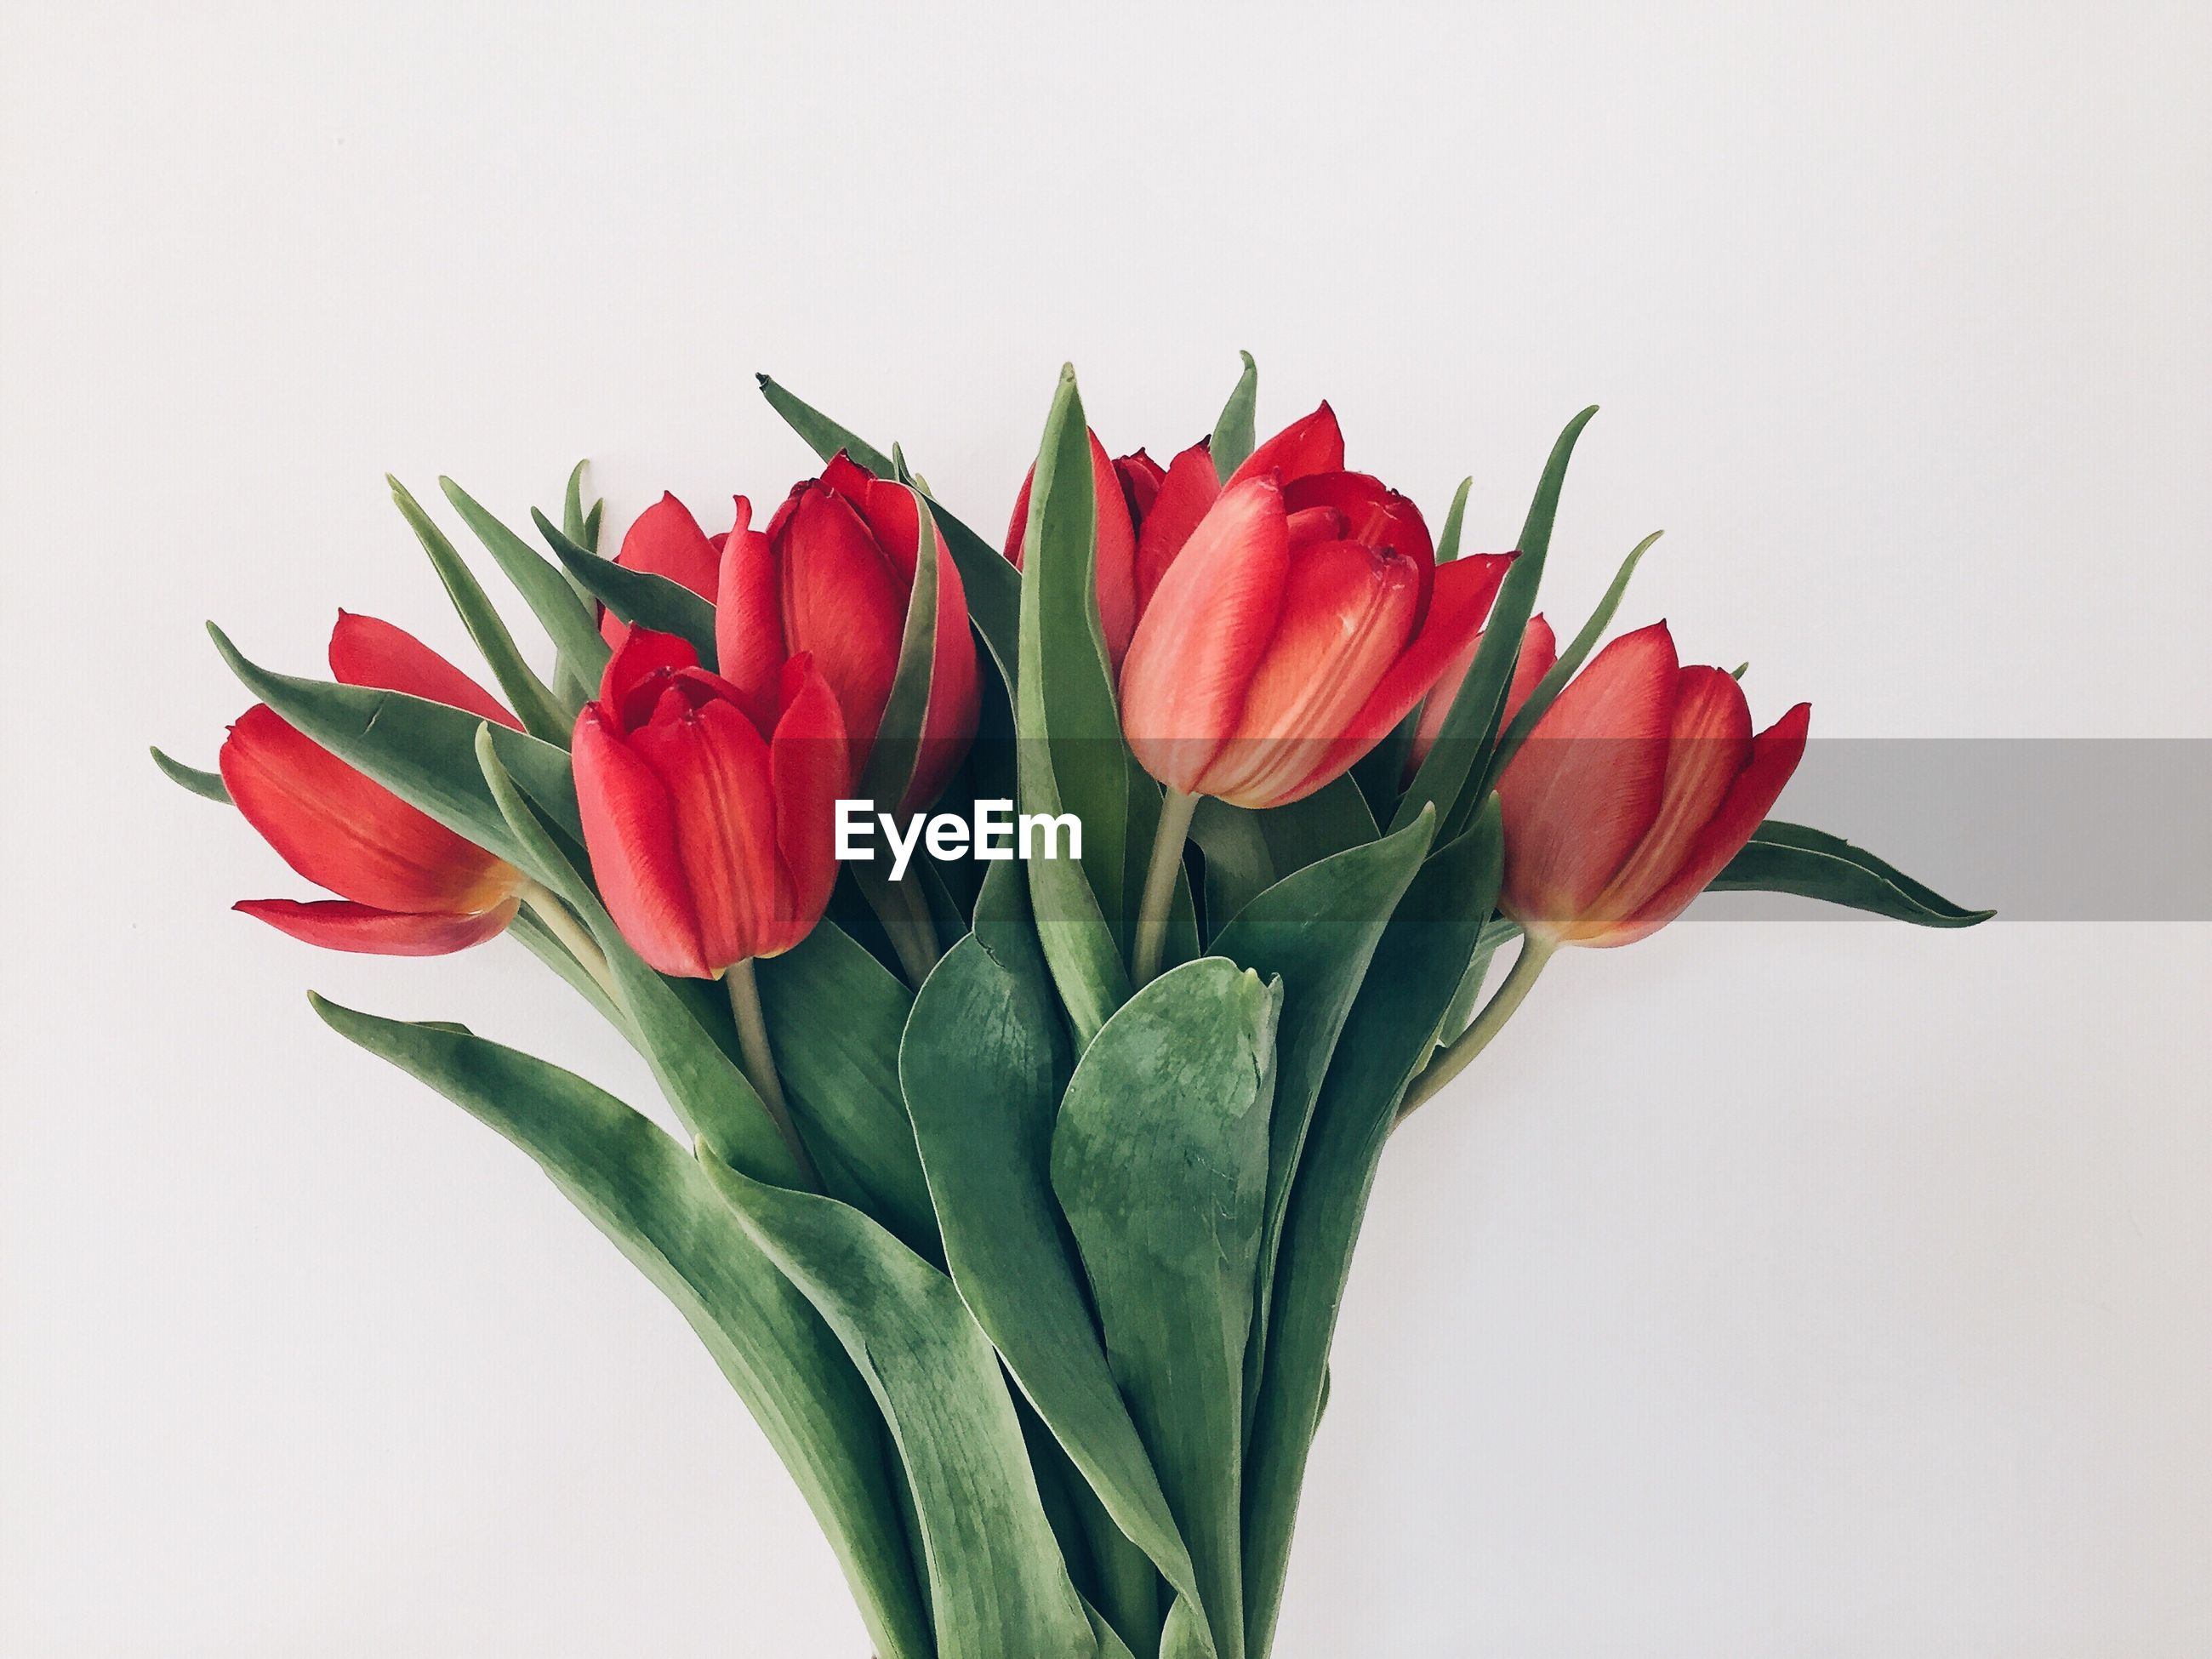 Close-up of red tulips on white background